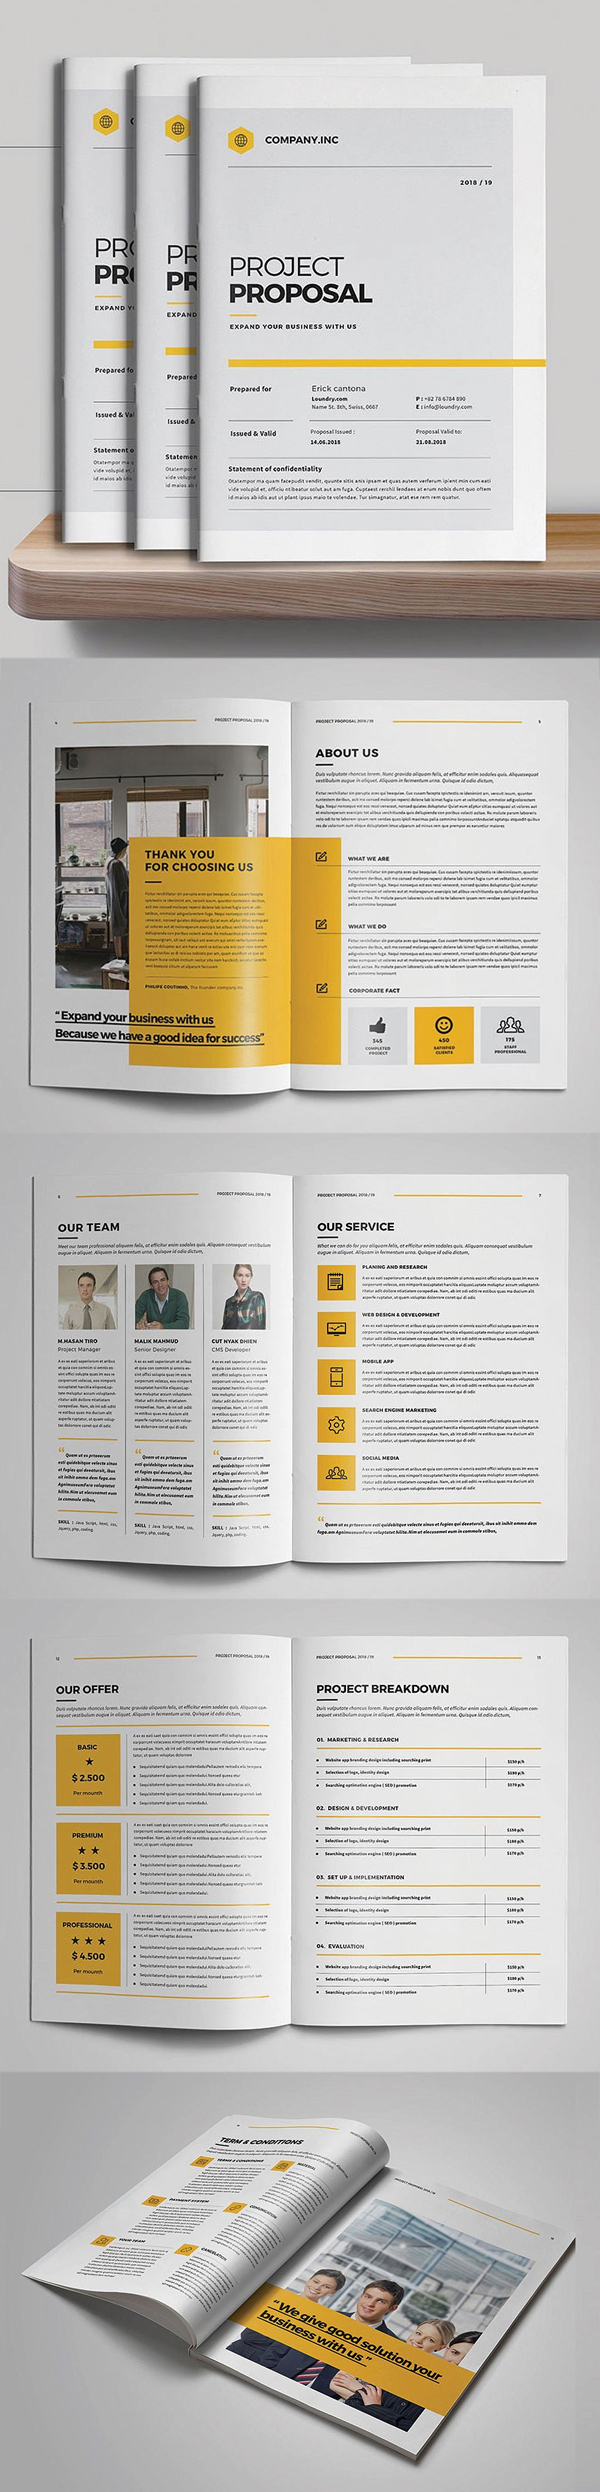 100 Professional Corporate Brochure Templates - 91